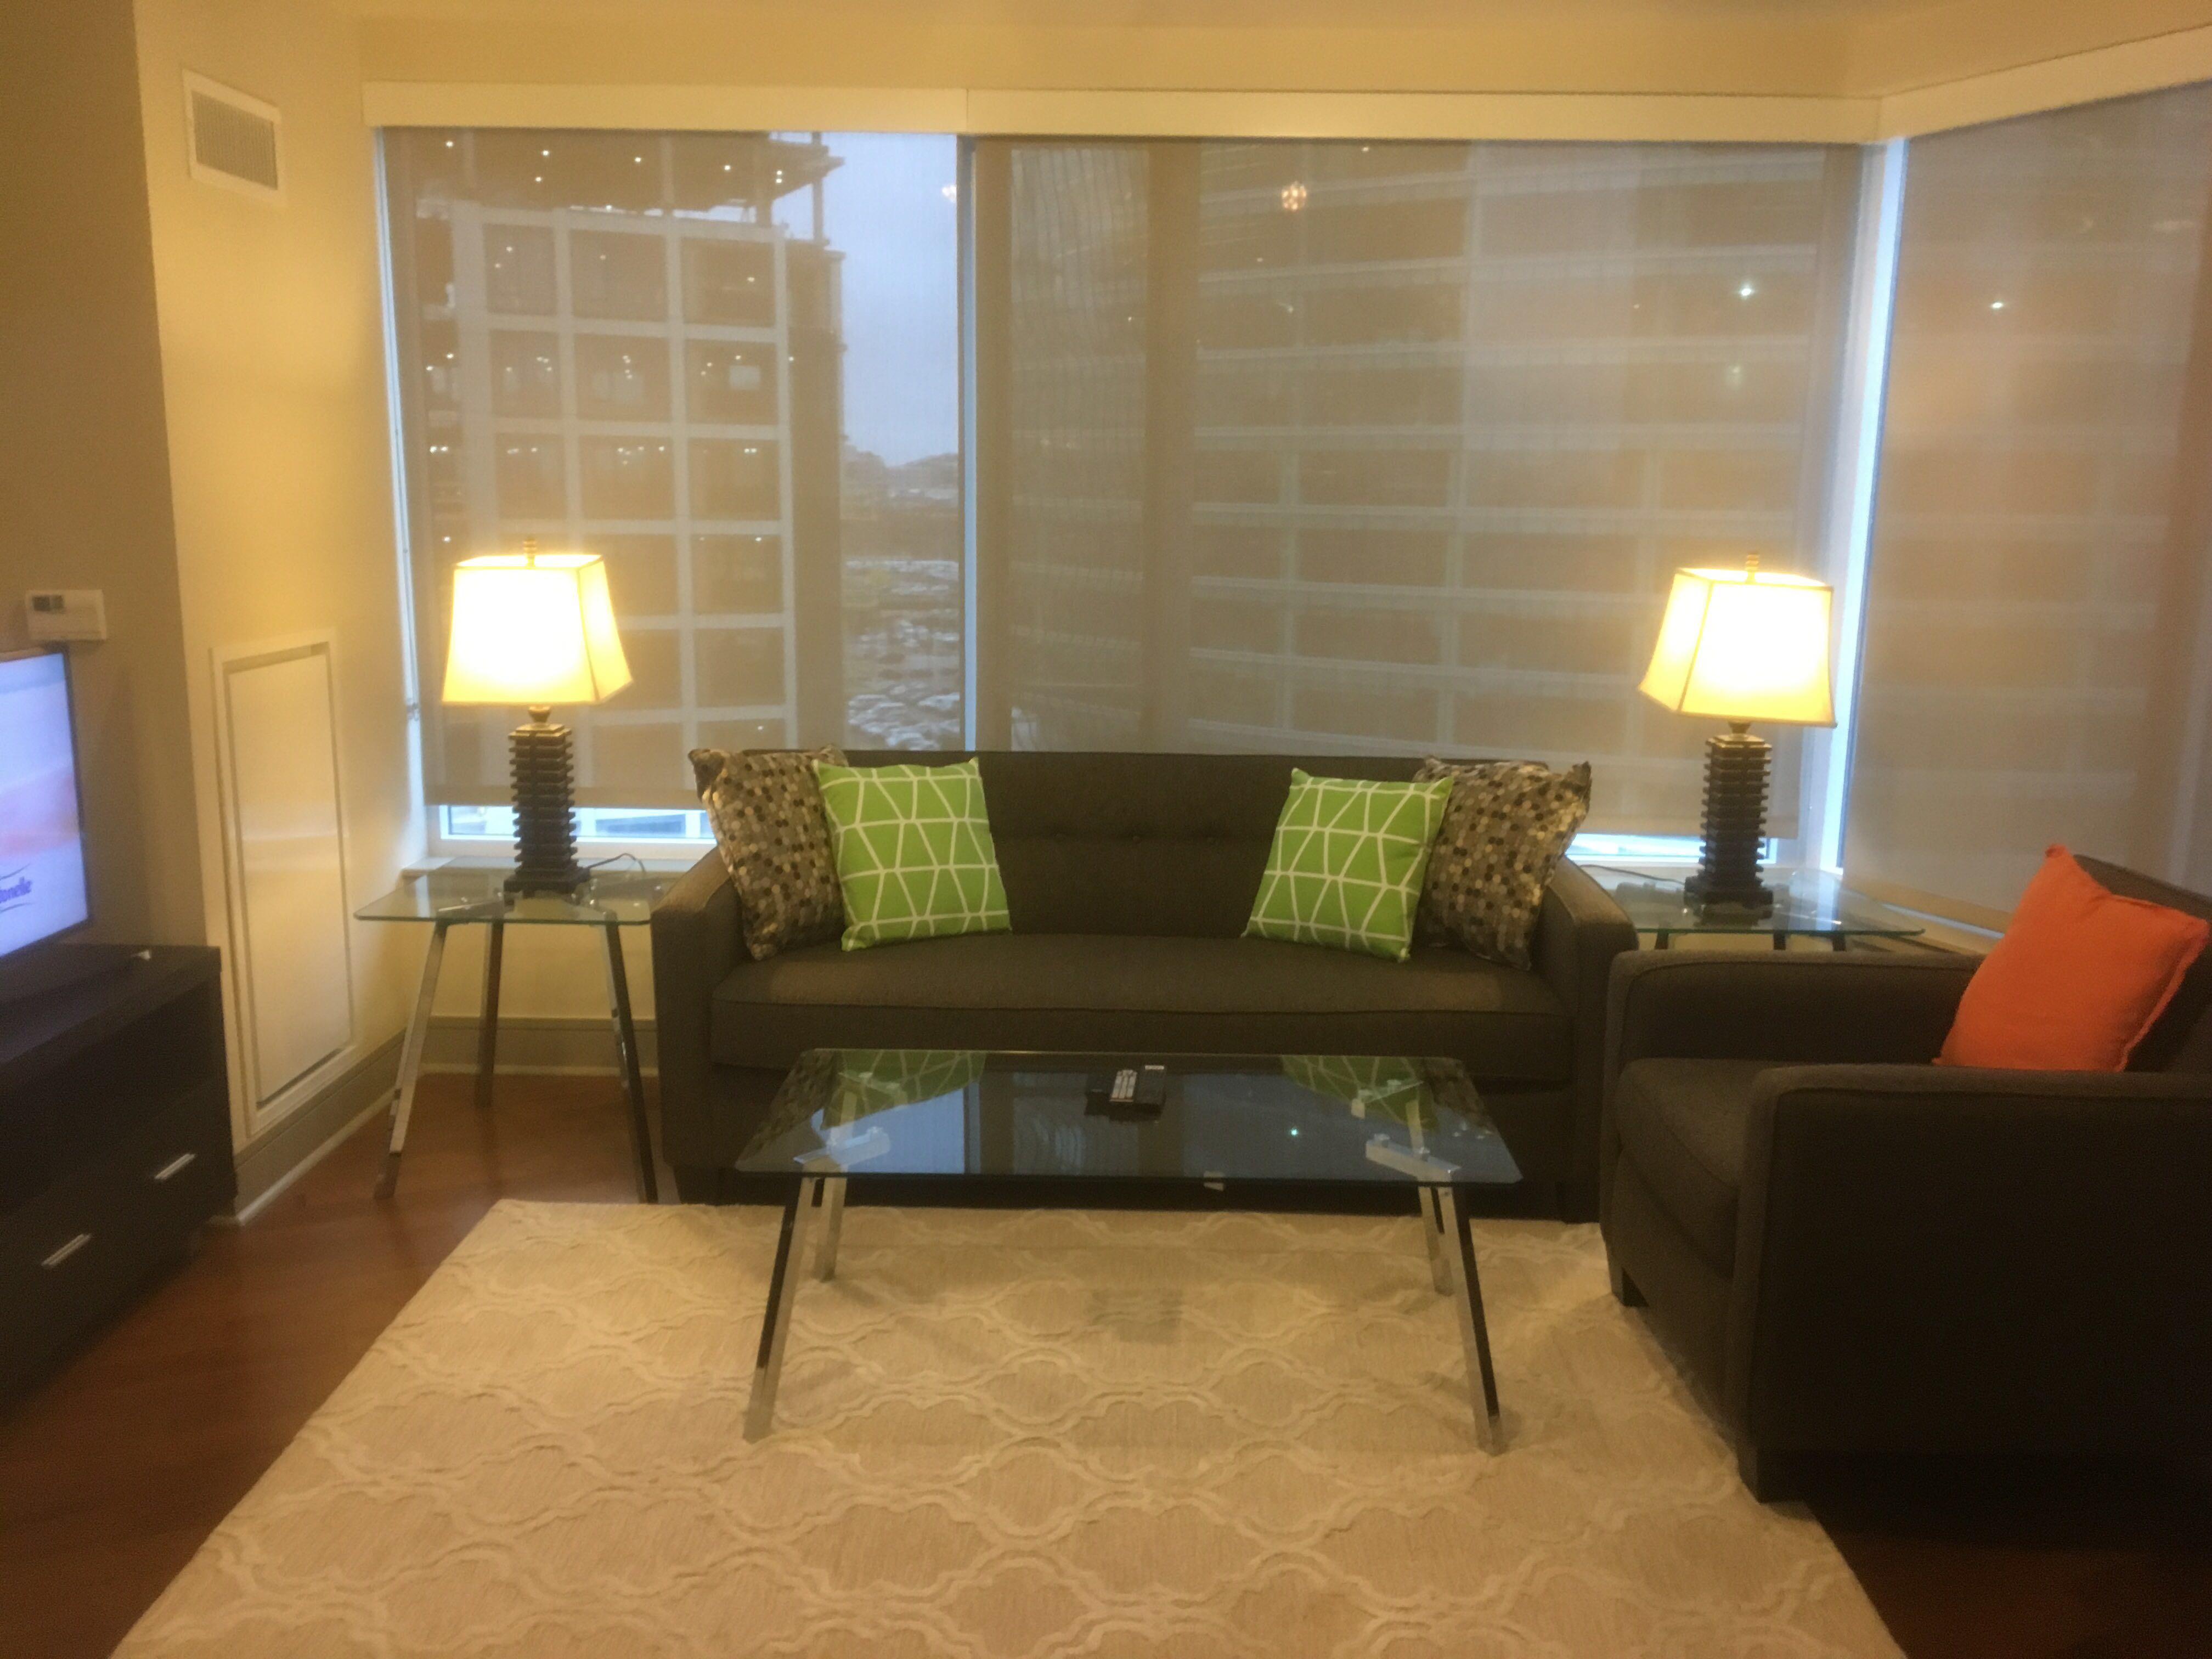 image 7 furnished 2 bedroom Apartment for rent in Waterfront, Boston Area